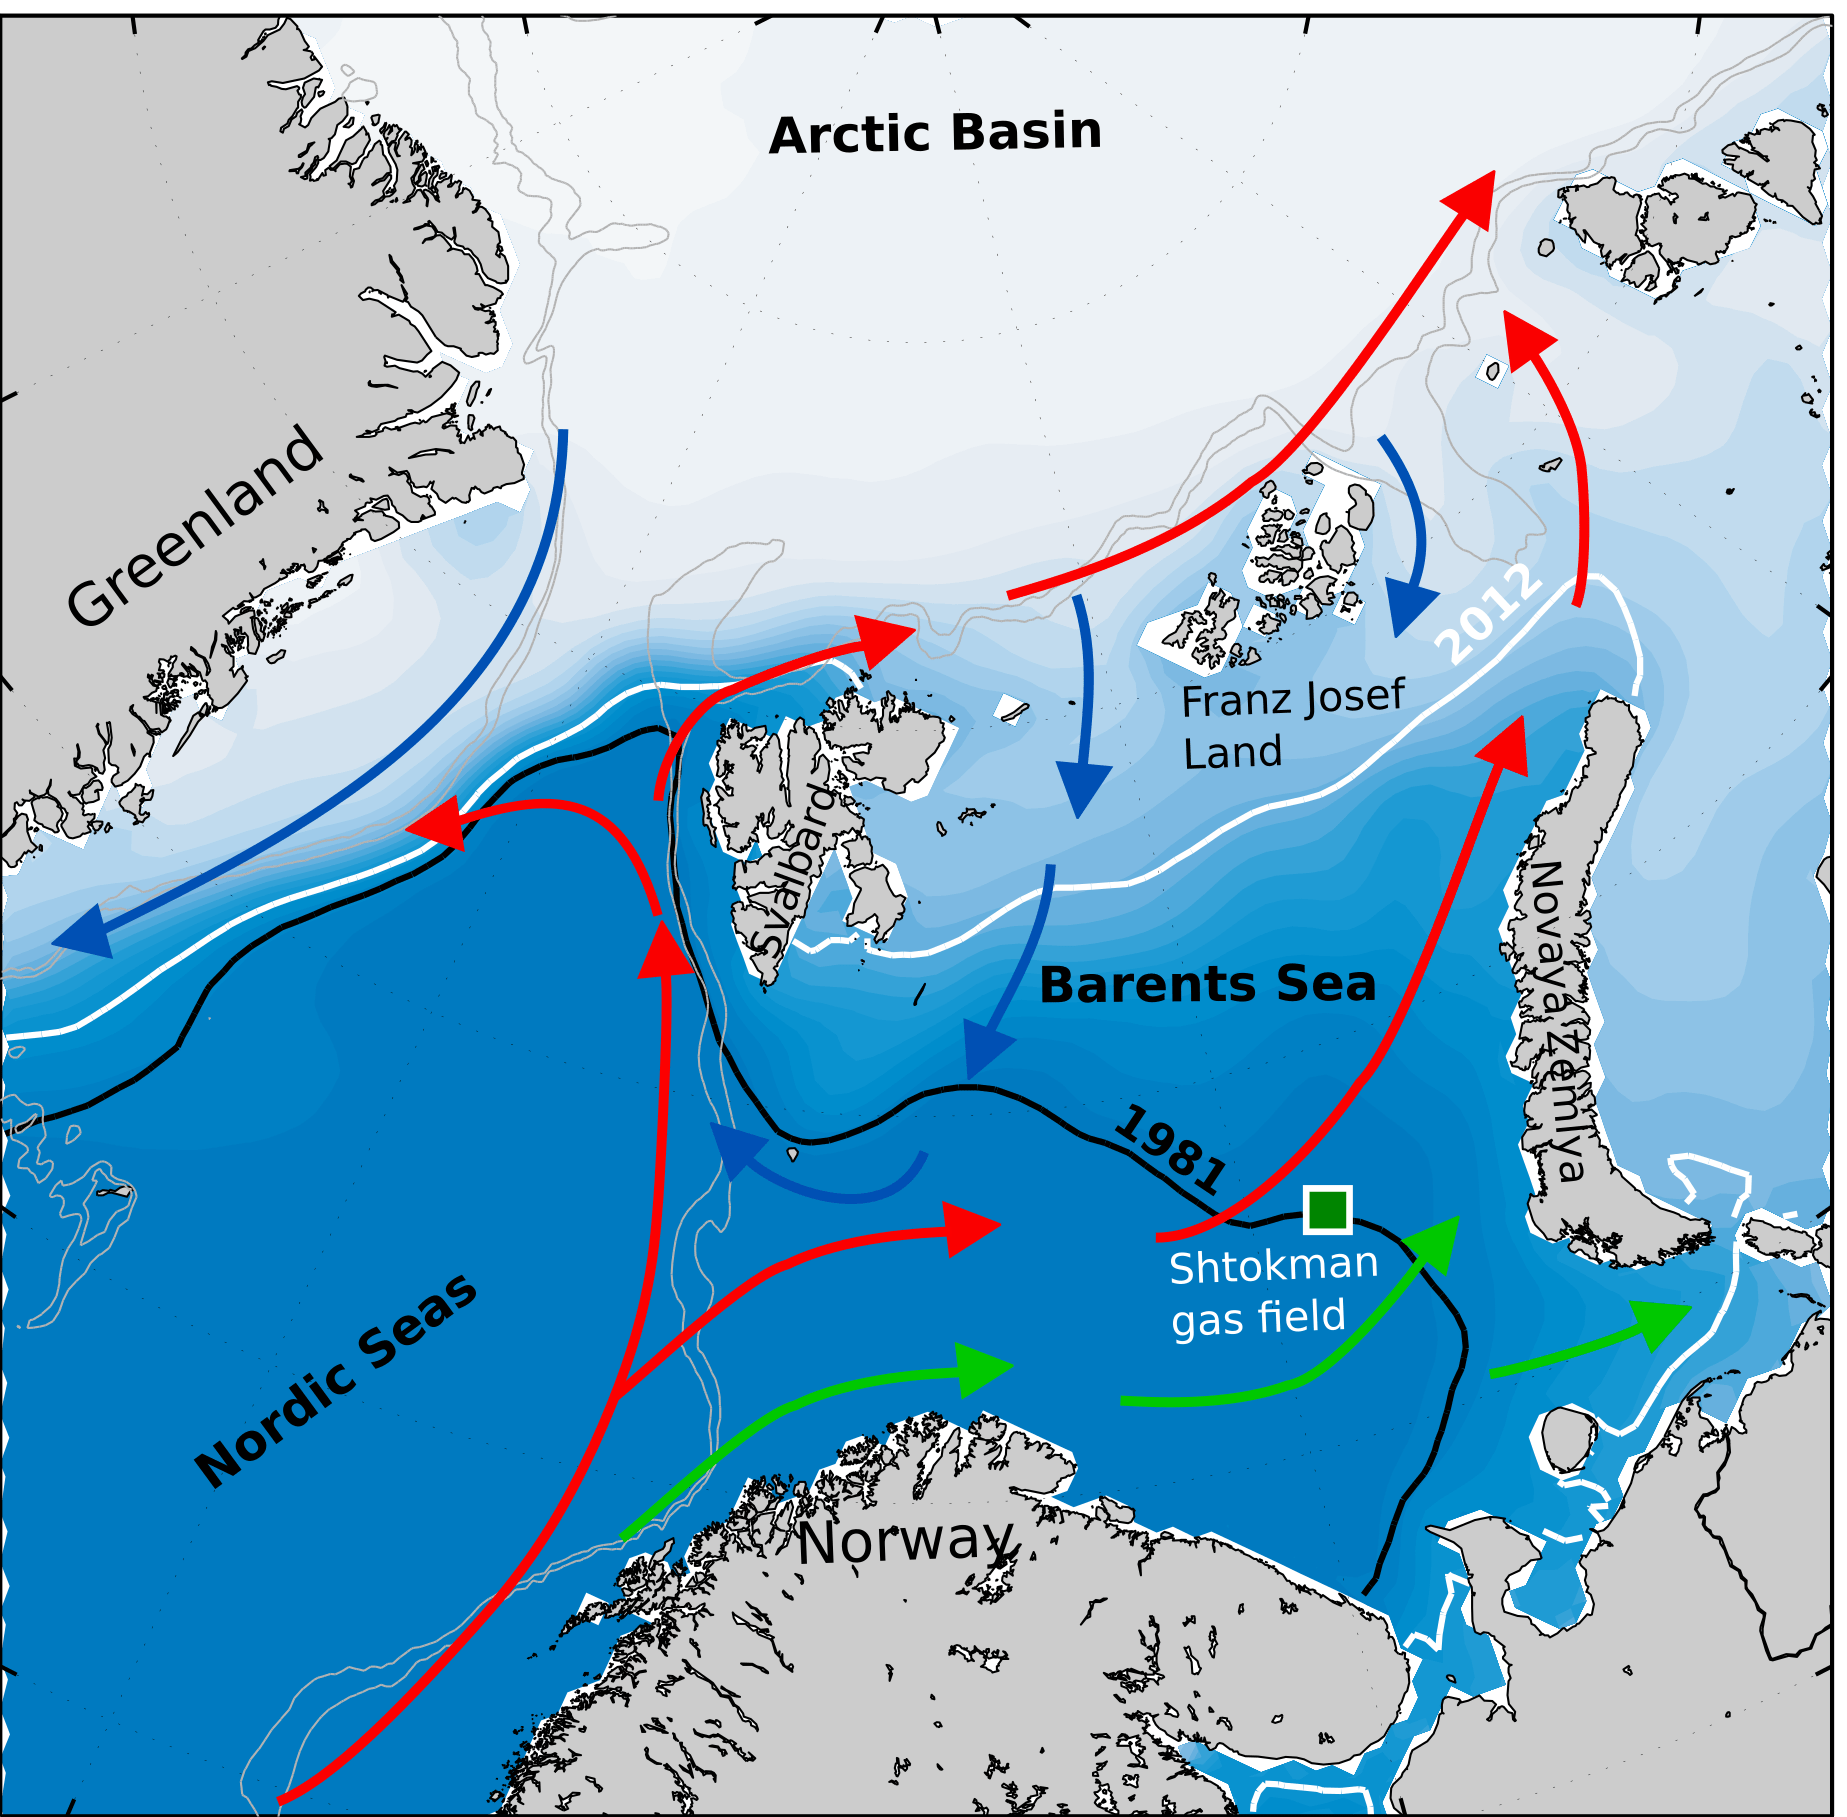 The two biophysical regions of the Barents Sea characterized by a dynamic winter sea ice cover in north, and open water in the south-west. The vriable ice distribution is exemplified with the 1981 (black line) and the 2012 (white line) extent, based on wintertime average (Nov-April) of satelite observations. The color shading indicates sea ice concentration climatology. The ice distribution is to a large degree determined by the Atlantic Water inflow and topographically steered currents, with Atlantic Water (AW) entering the Barents Sea from the Nordic Seas in south-west (red arrows), and the Arctic Water (ArW) entering the Barents Sea shelf from the Arctic Basin in the north (blue arrows). The Norwegian Coastal Current (NCC, green arrows) transports fresh water to the Barents Sea and further into the Kara Sea (Illustration: M. Årthun, UiB).